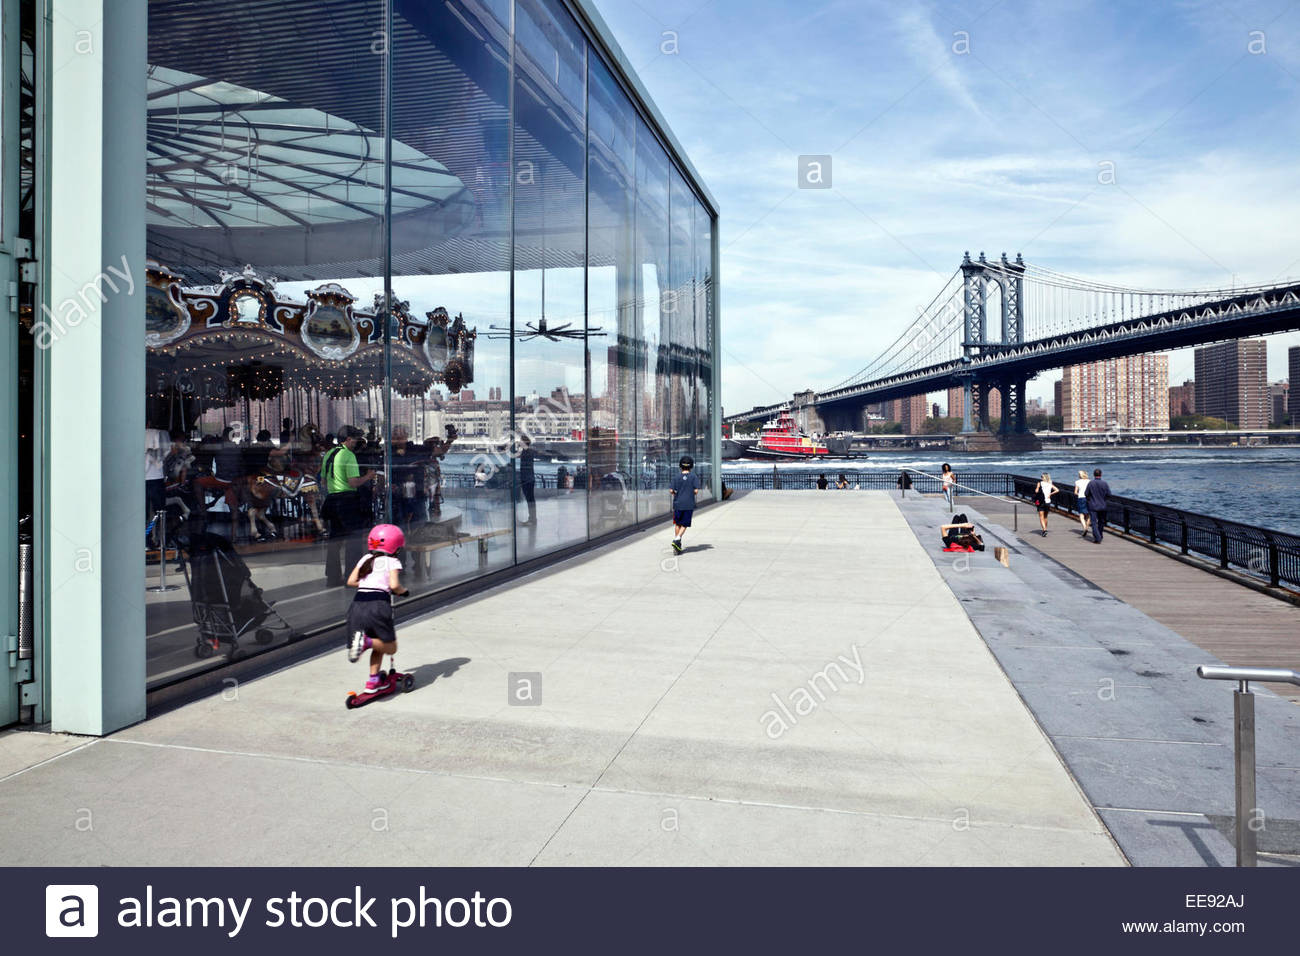 Empire Fulton Ferry park in Brooklyn DUMBO with Jane's carousel and the Manhattan Bridge - Stock Image